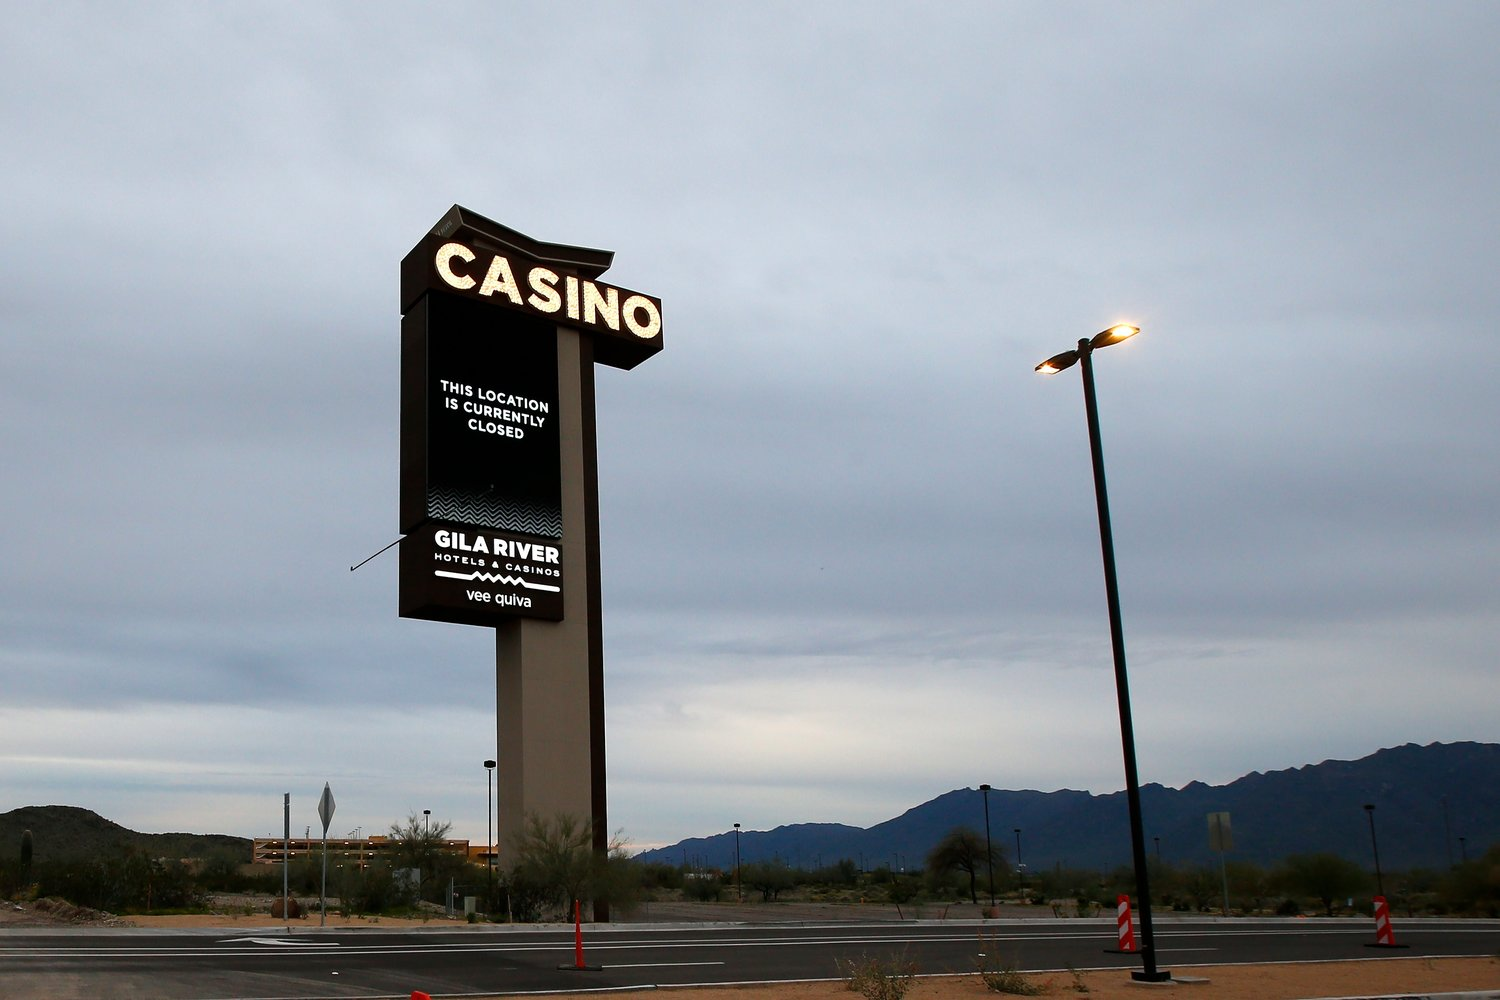 A sign shows the Gila River Hotels & Casinos Vee Quiva location closed due to the coronavirus Friday, March 20, 2020, in Laveen, Arizona.